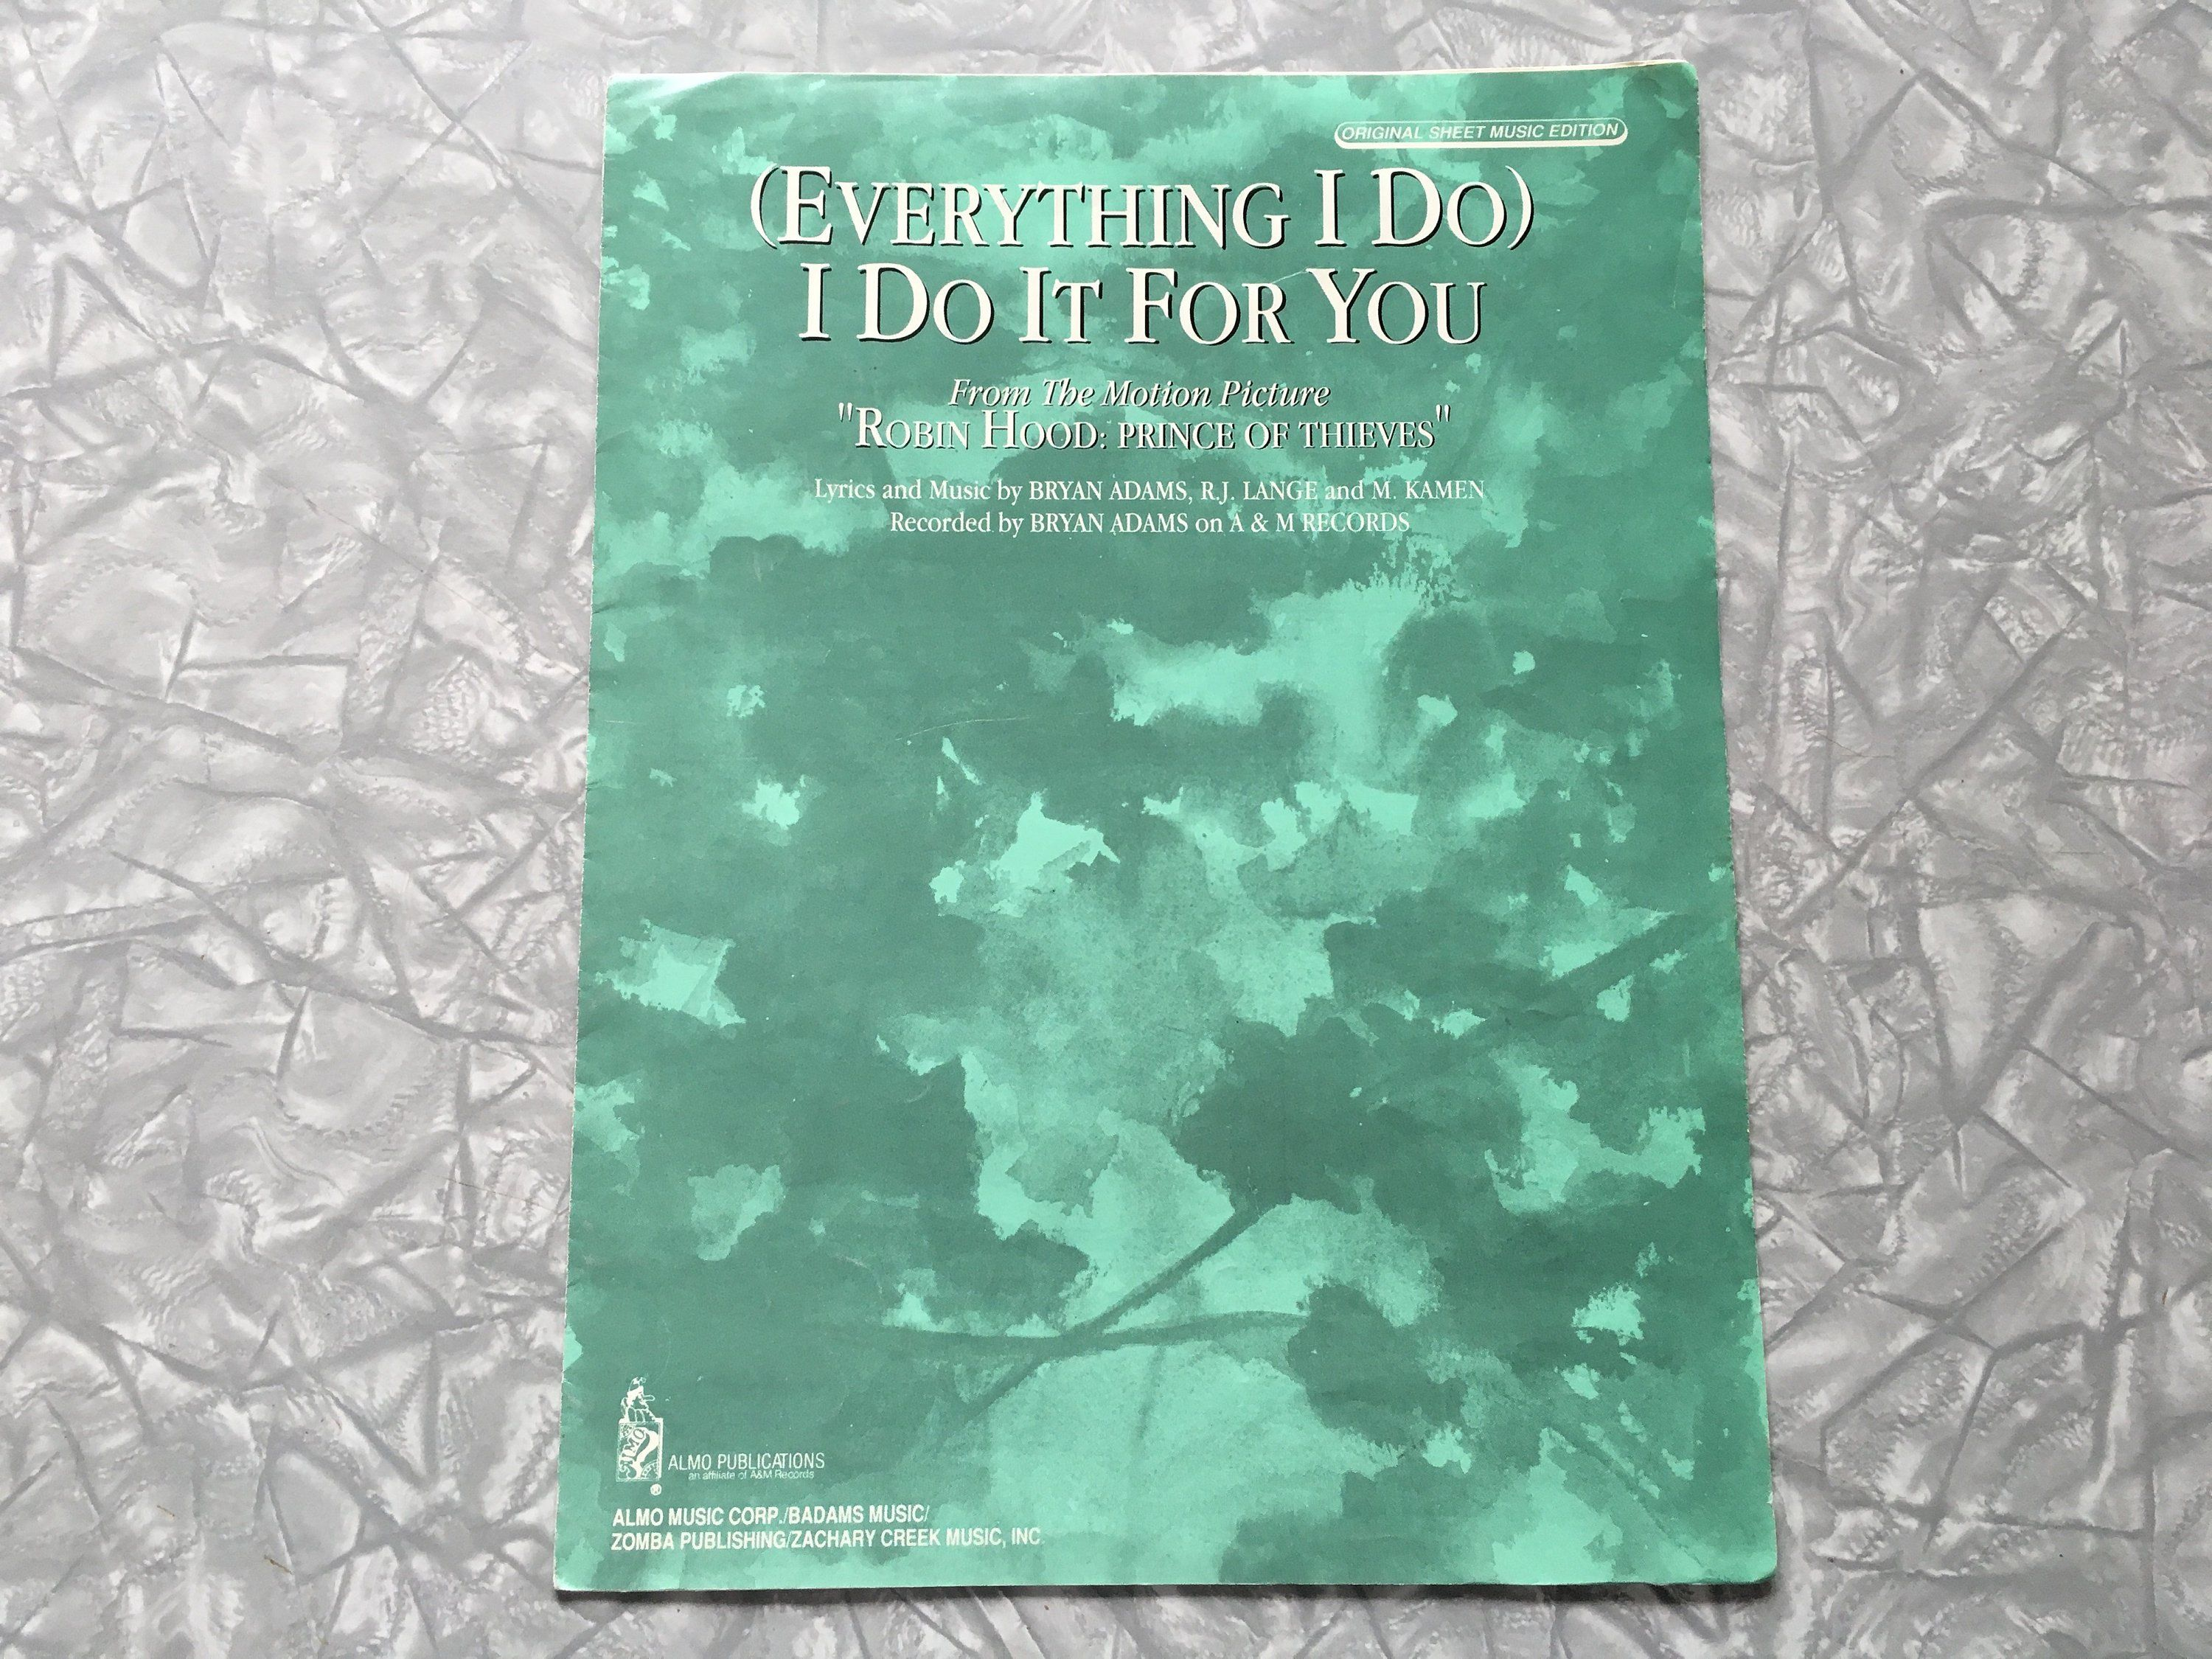 1991 Bryan Adams Everything I Do I Do It For You Sheet Music Bryan Adams Sheet Music Everything